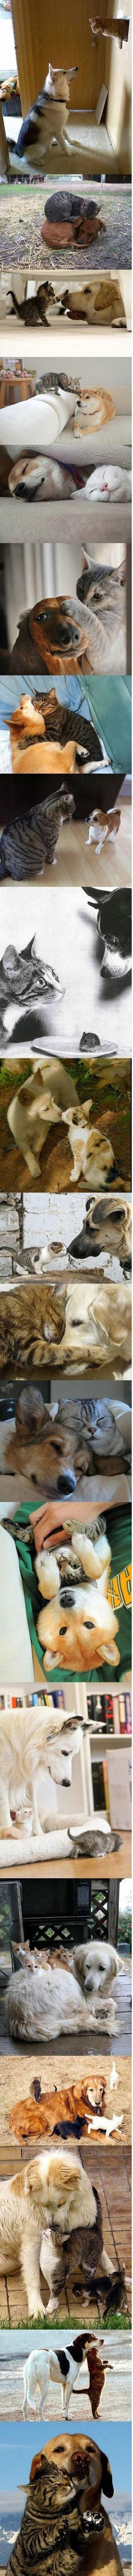 Dogs and Cats..... <3